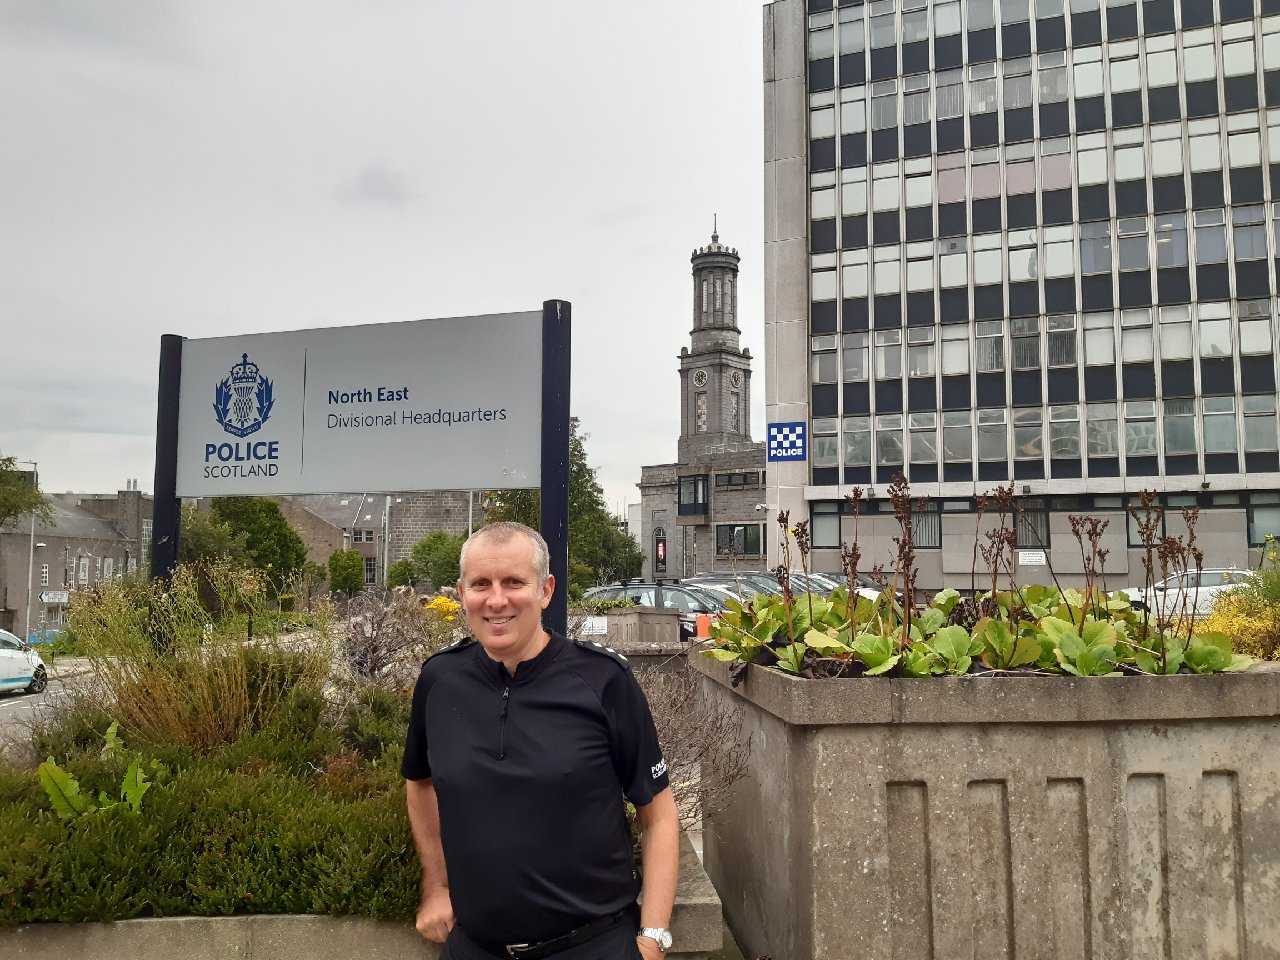 Chief Inspector David Paterson, Partnerships & Events